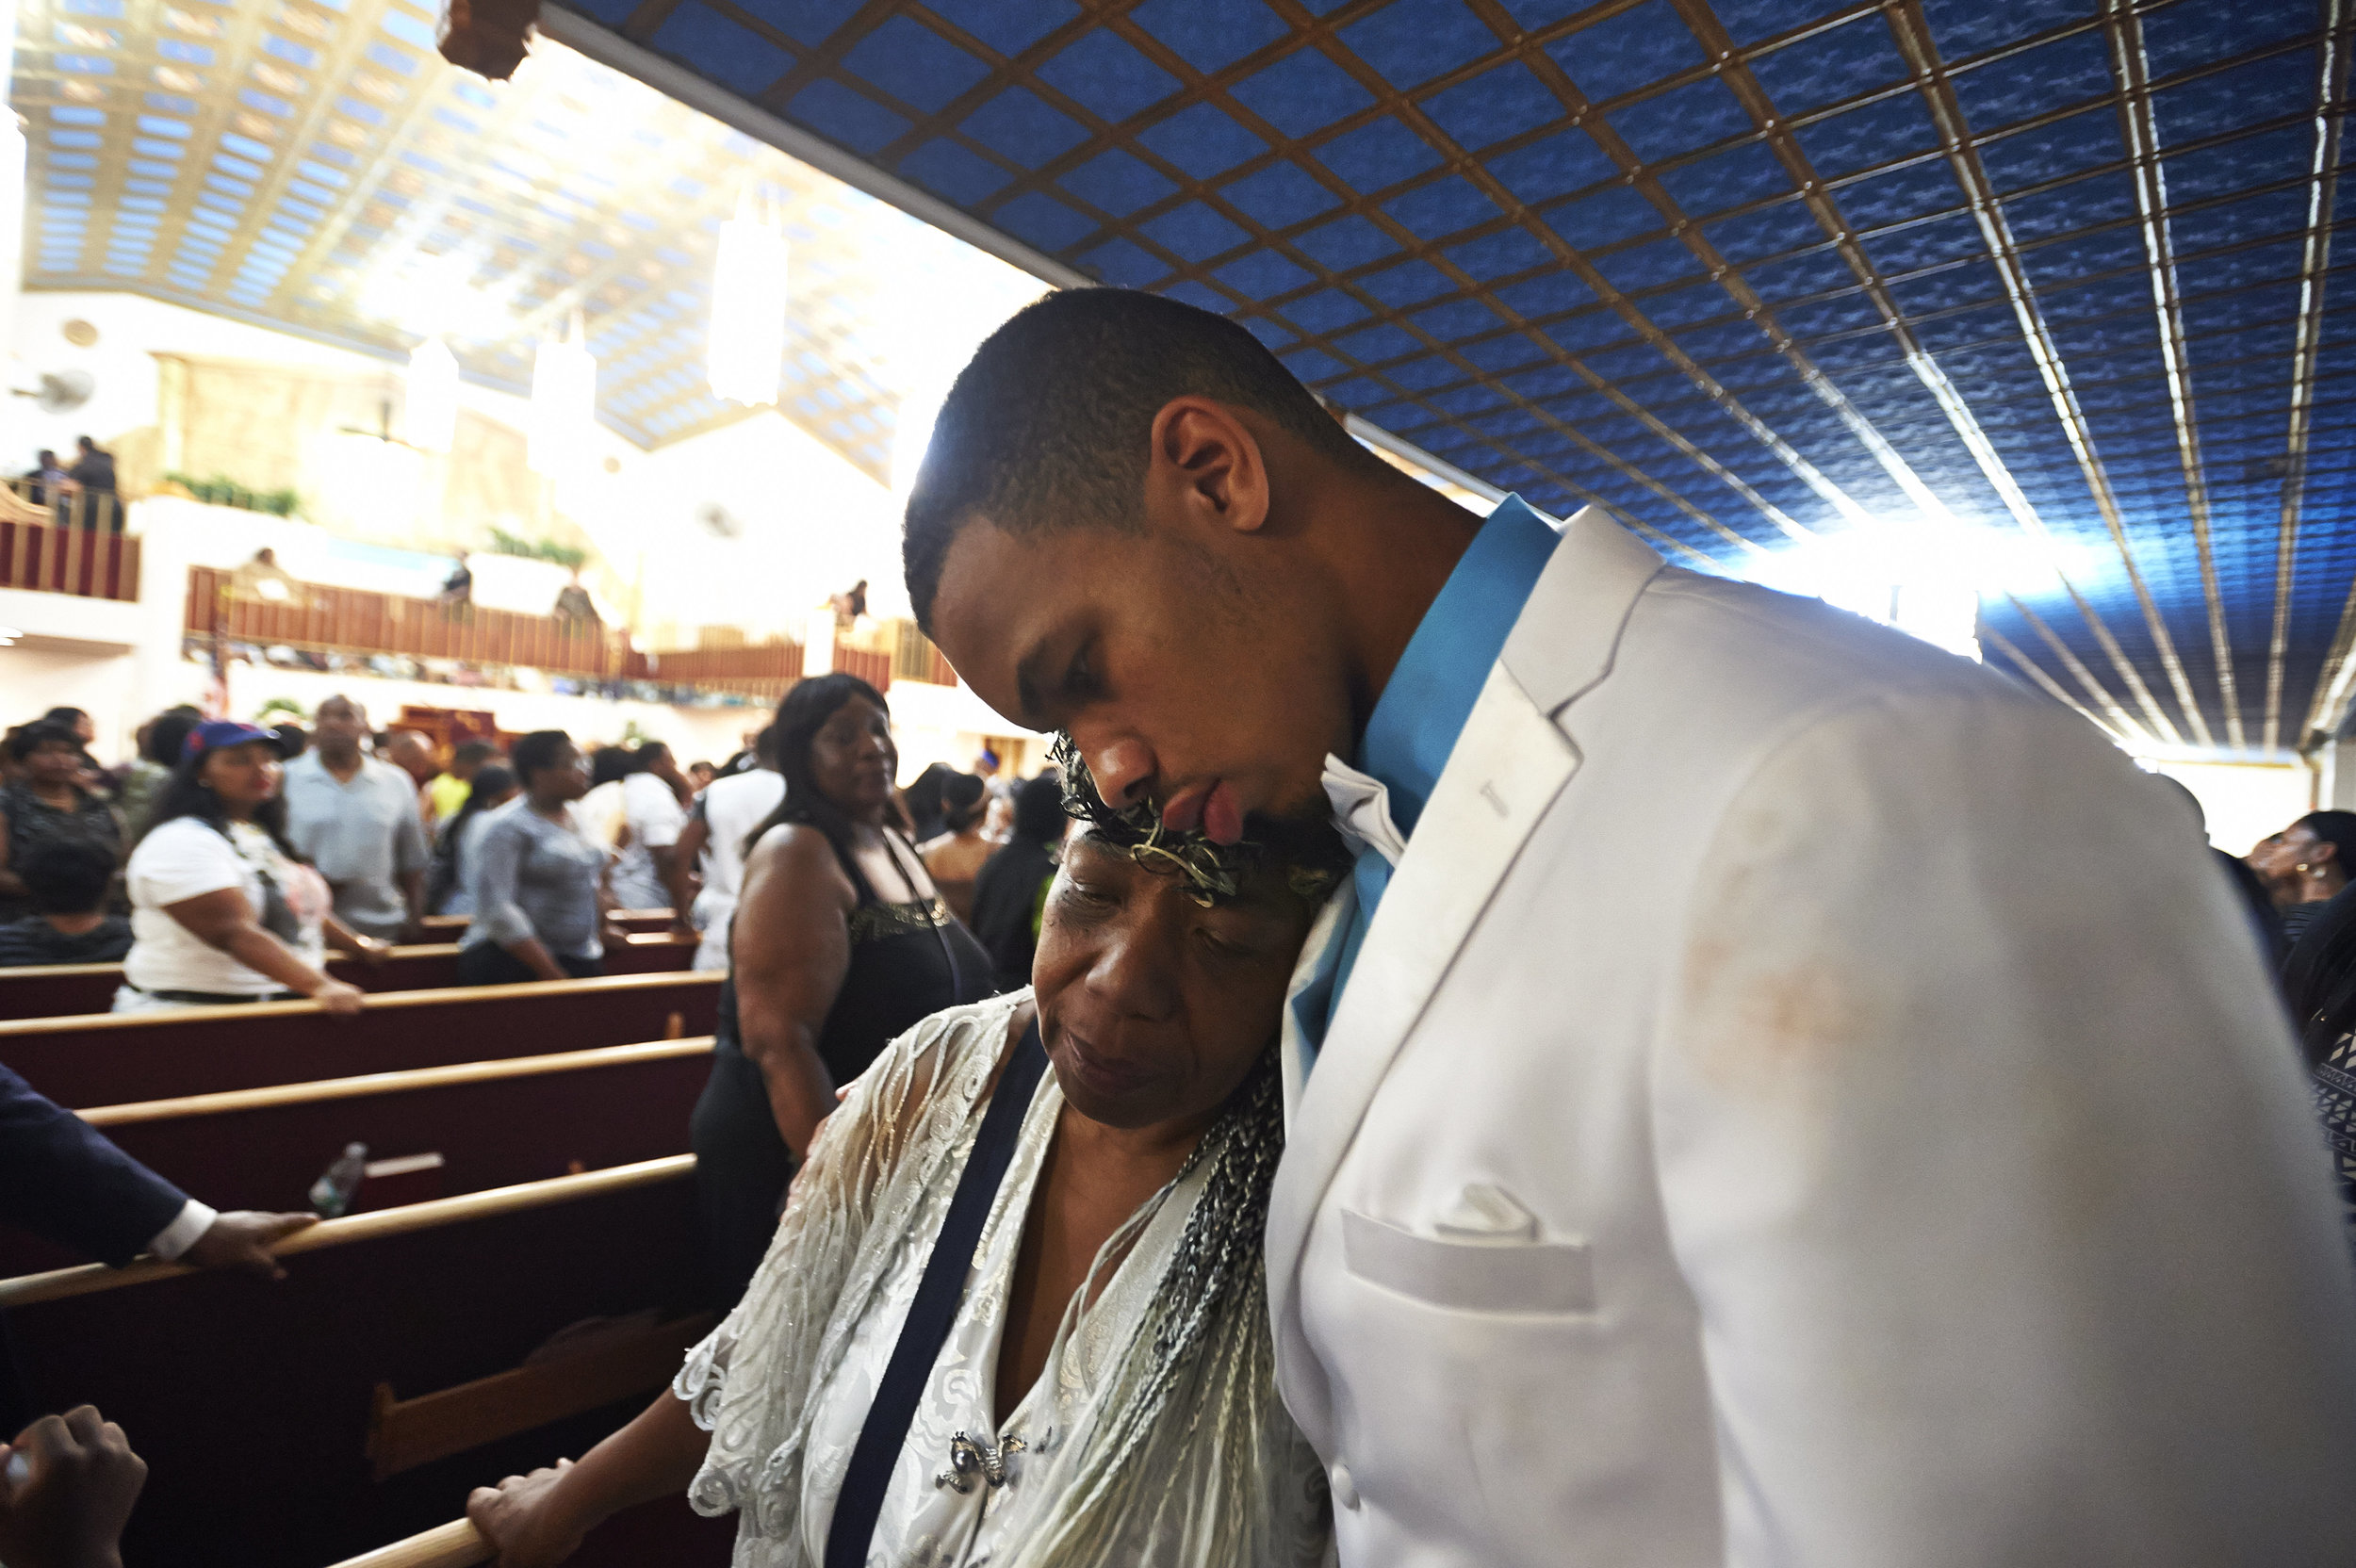 Gwendolyn Flagg-Carr, mother of Eric Garner, and Eric Snipes Garner, Jr., son of Eric Garner, leave his funeral service at Bethel Baptist Church on Wednesday, July 23, 2014, in New York, NY.